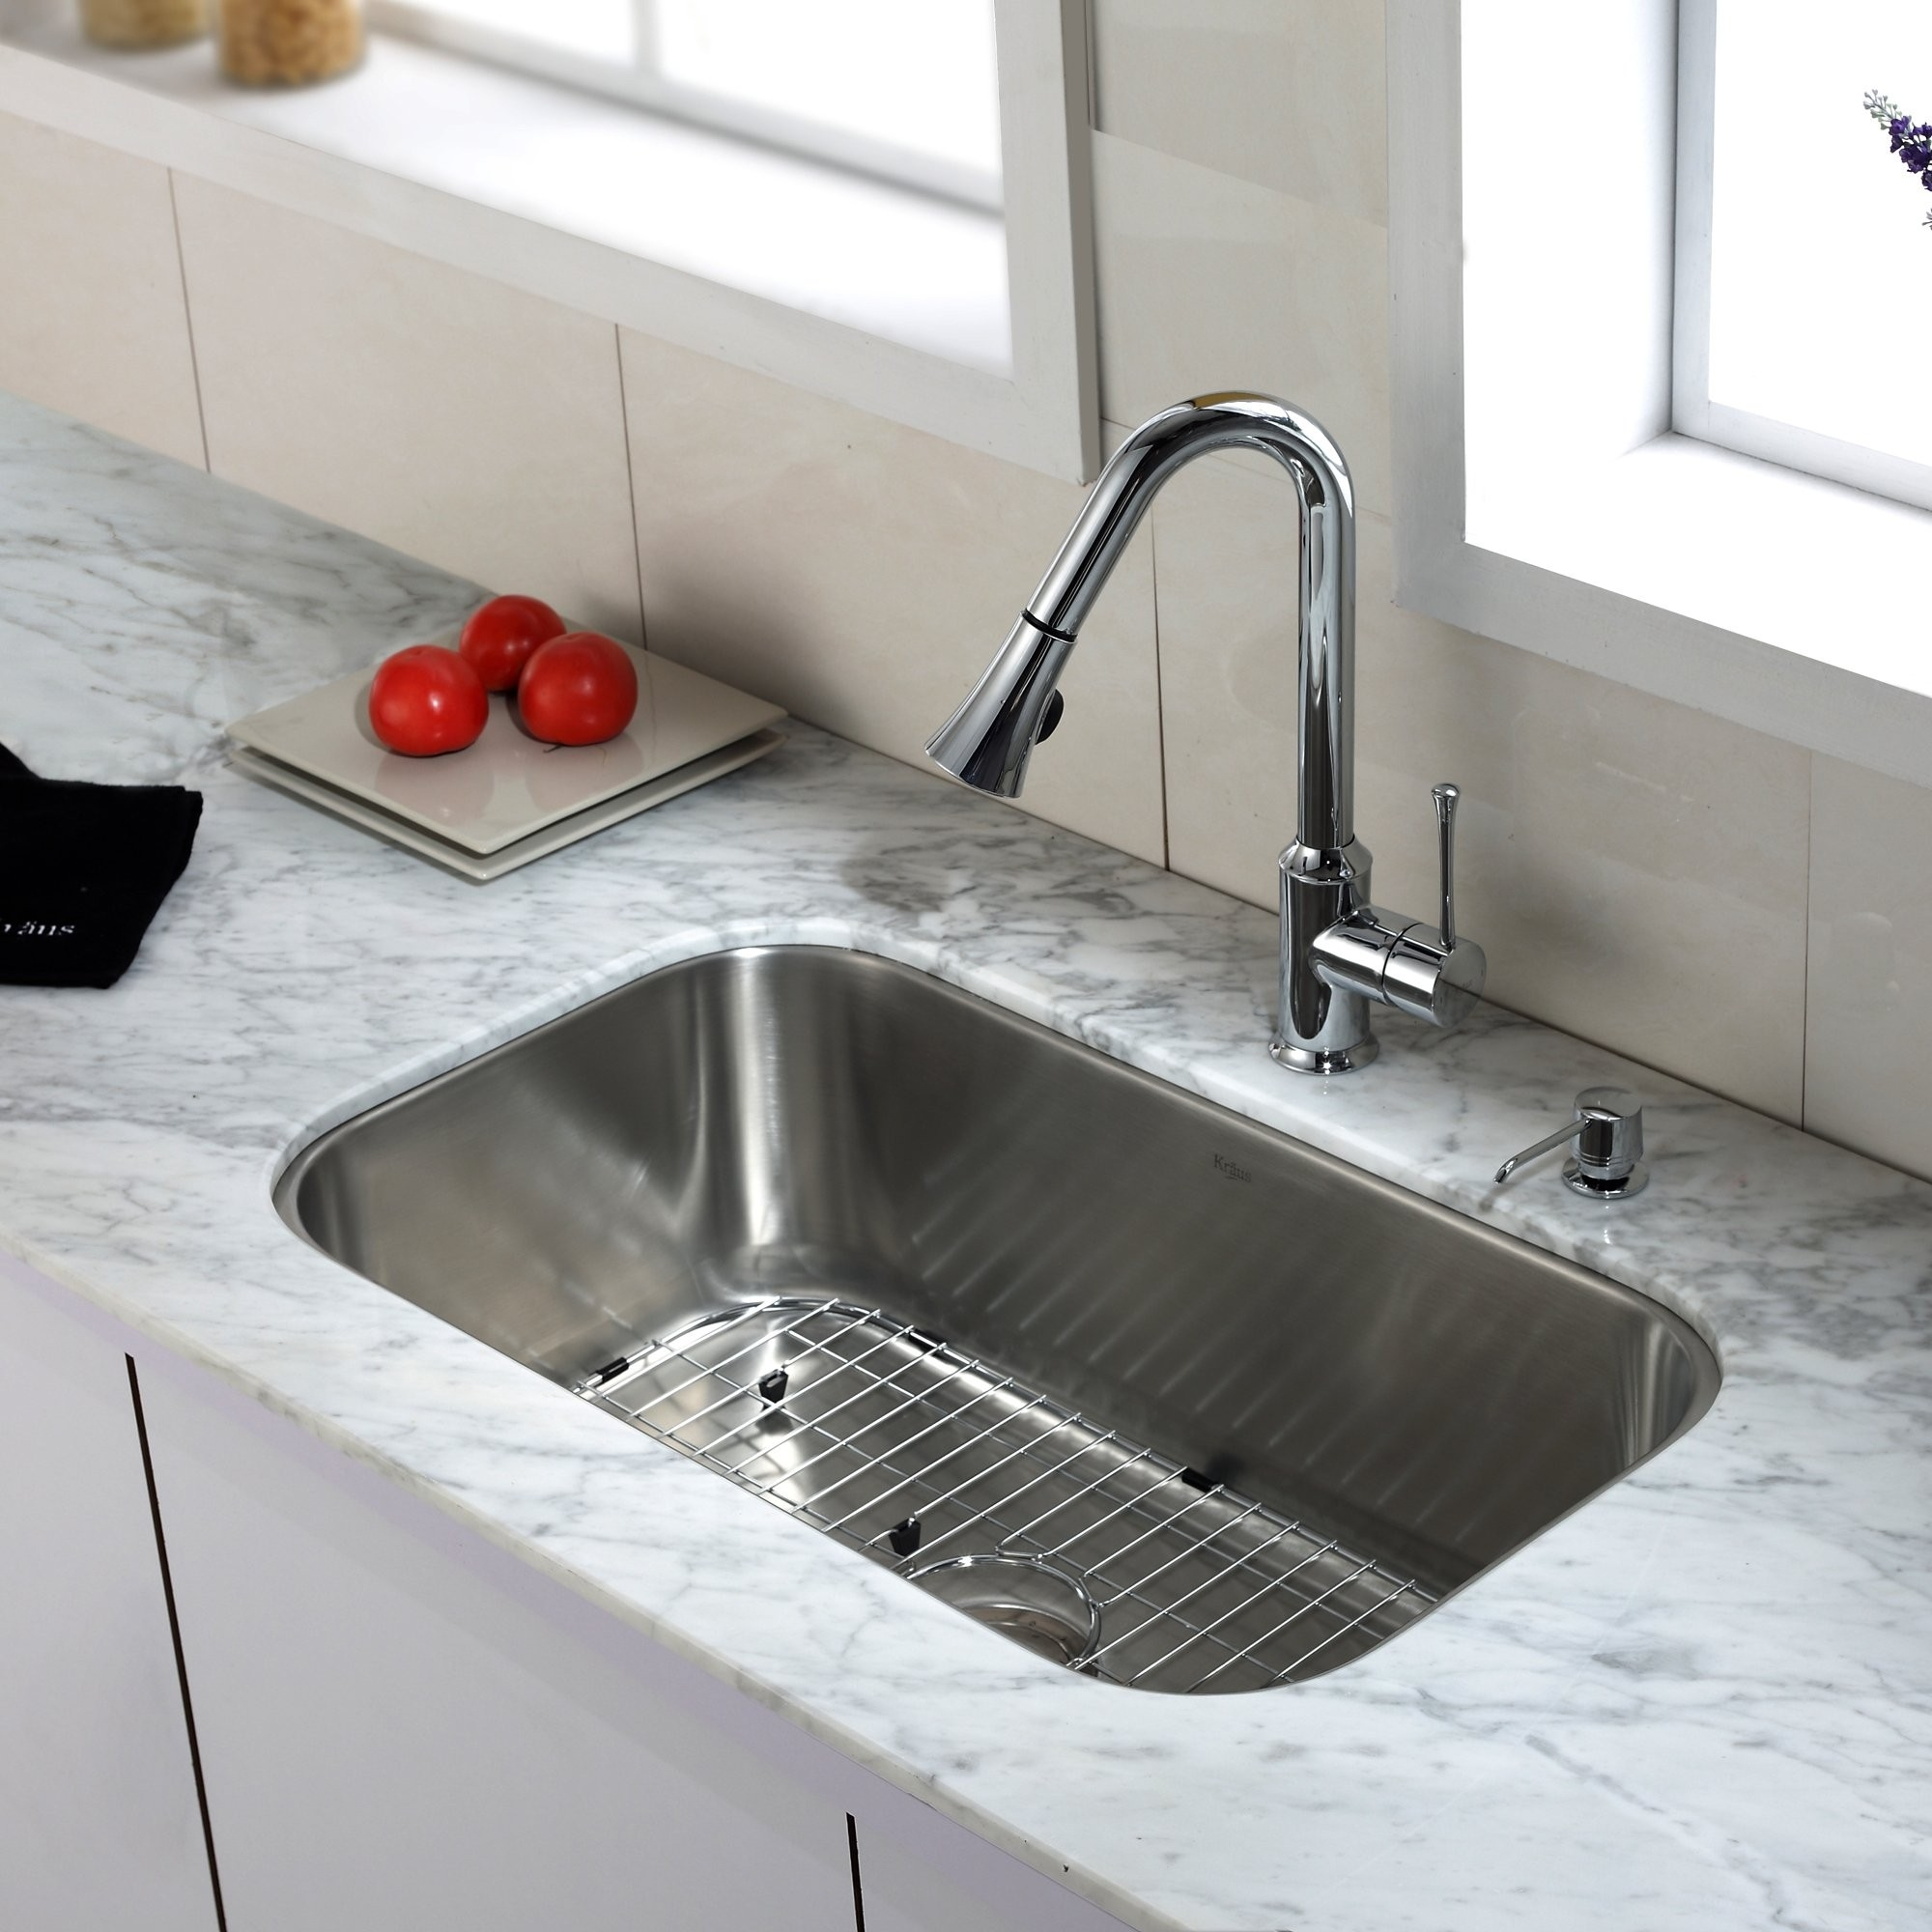 Ideas, top mount kitchen sink and faucet combo top mount kitchen sink and faucet combo kitchen kitchen sink faucet faucet kitchen sink kitchen 2000 x 2000  .